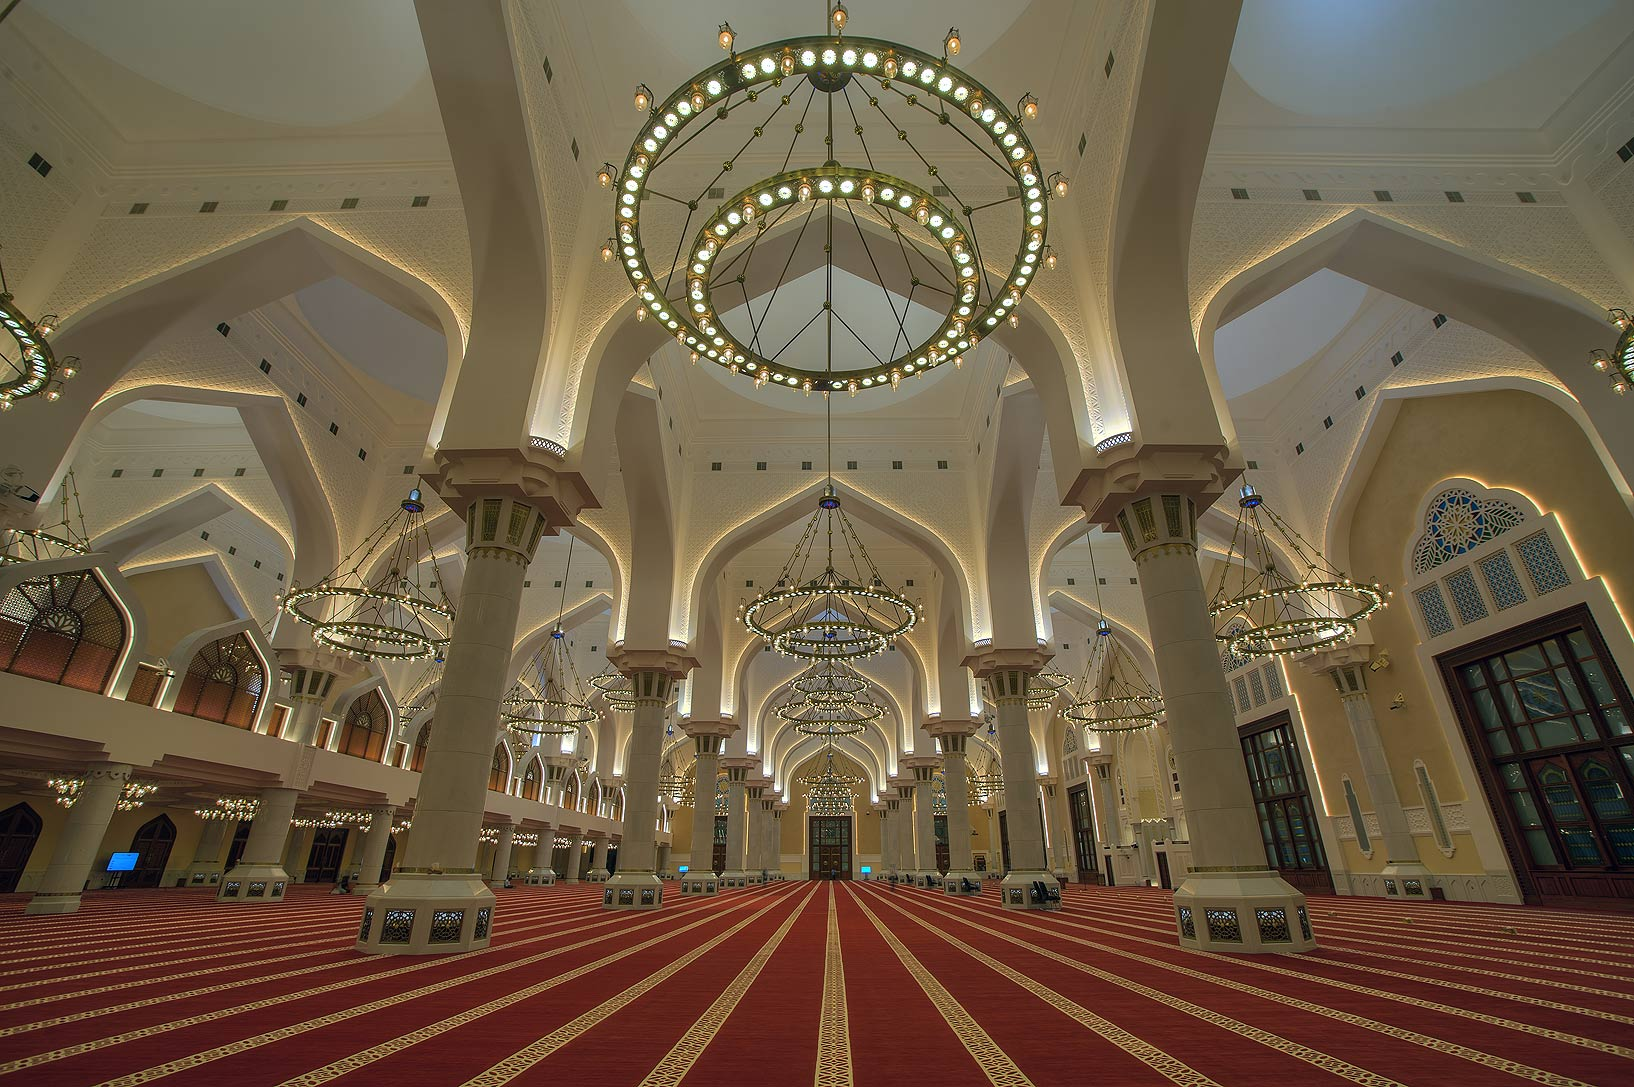 Prayer hall of State Mosque (Sheikh Imam Muhammad Ibn Abdul Wahhab Mosque). Doha, Qatar